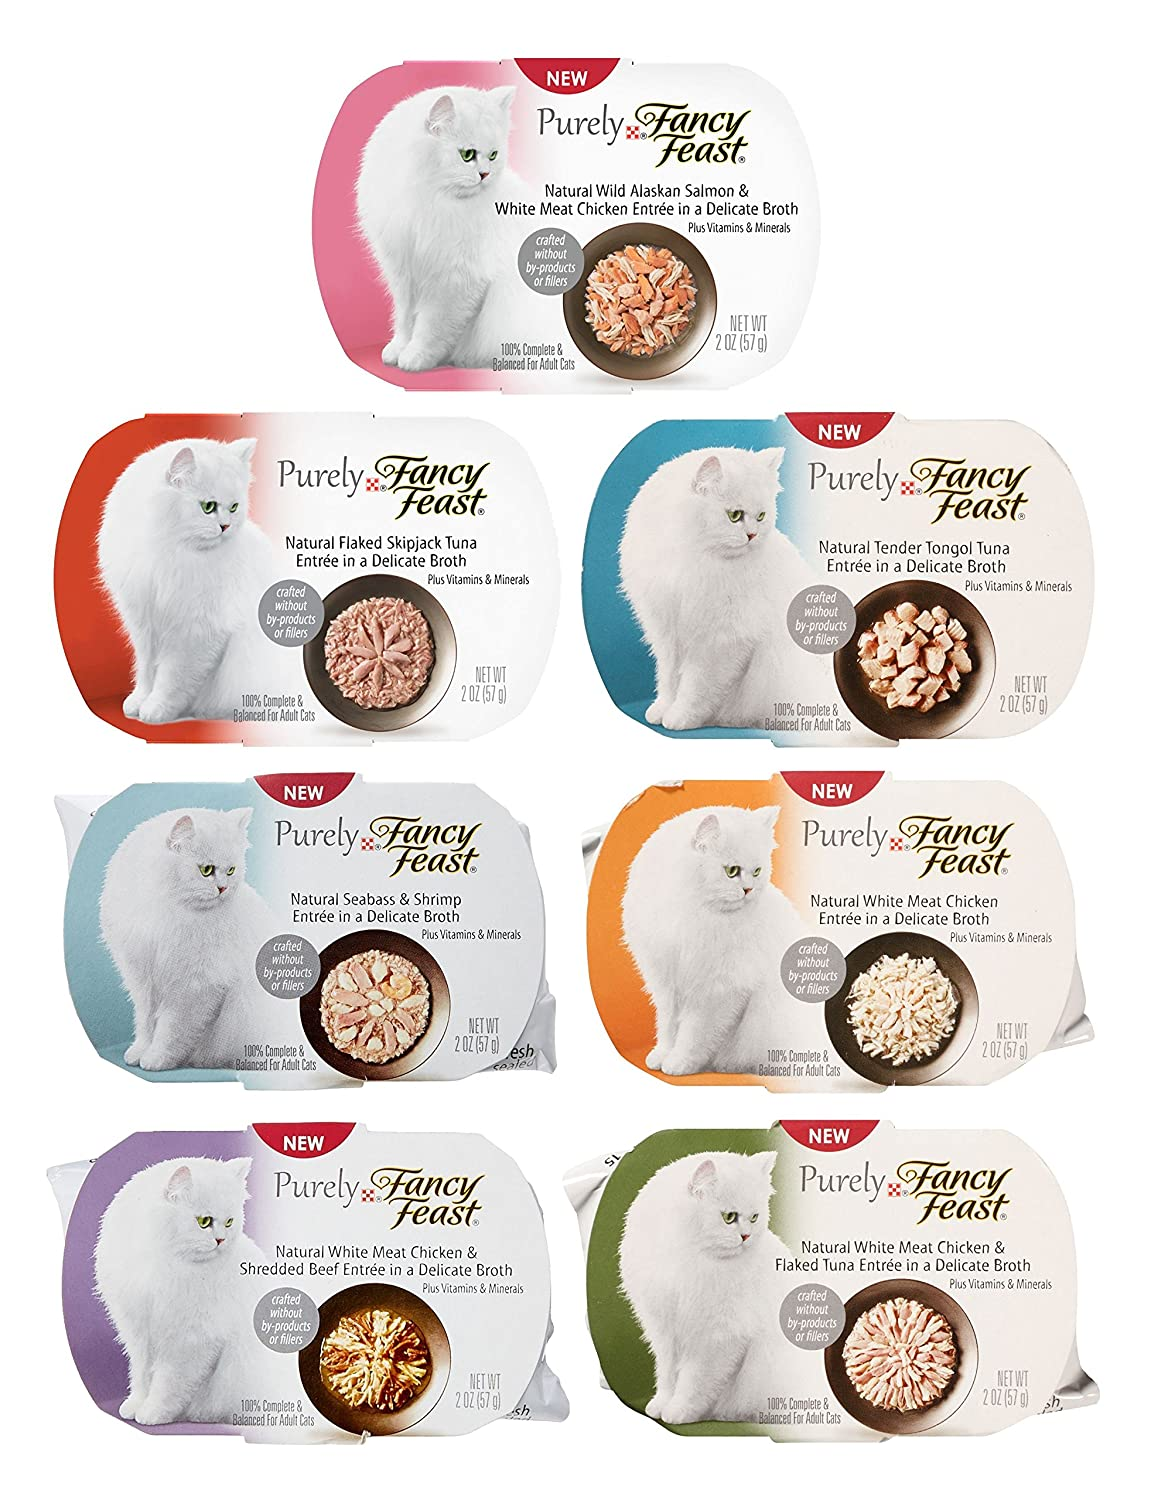 14 Pack Purely Fancy Feast Variety Pack, 7 Flavors, 2-Ounces Each (14 Pack) by Fancy Feast